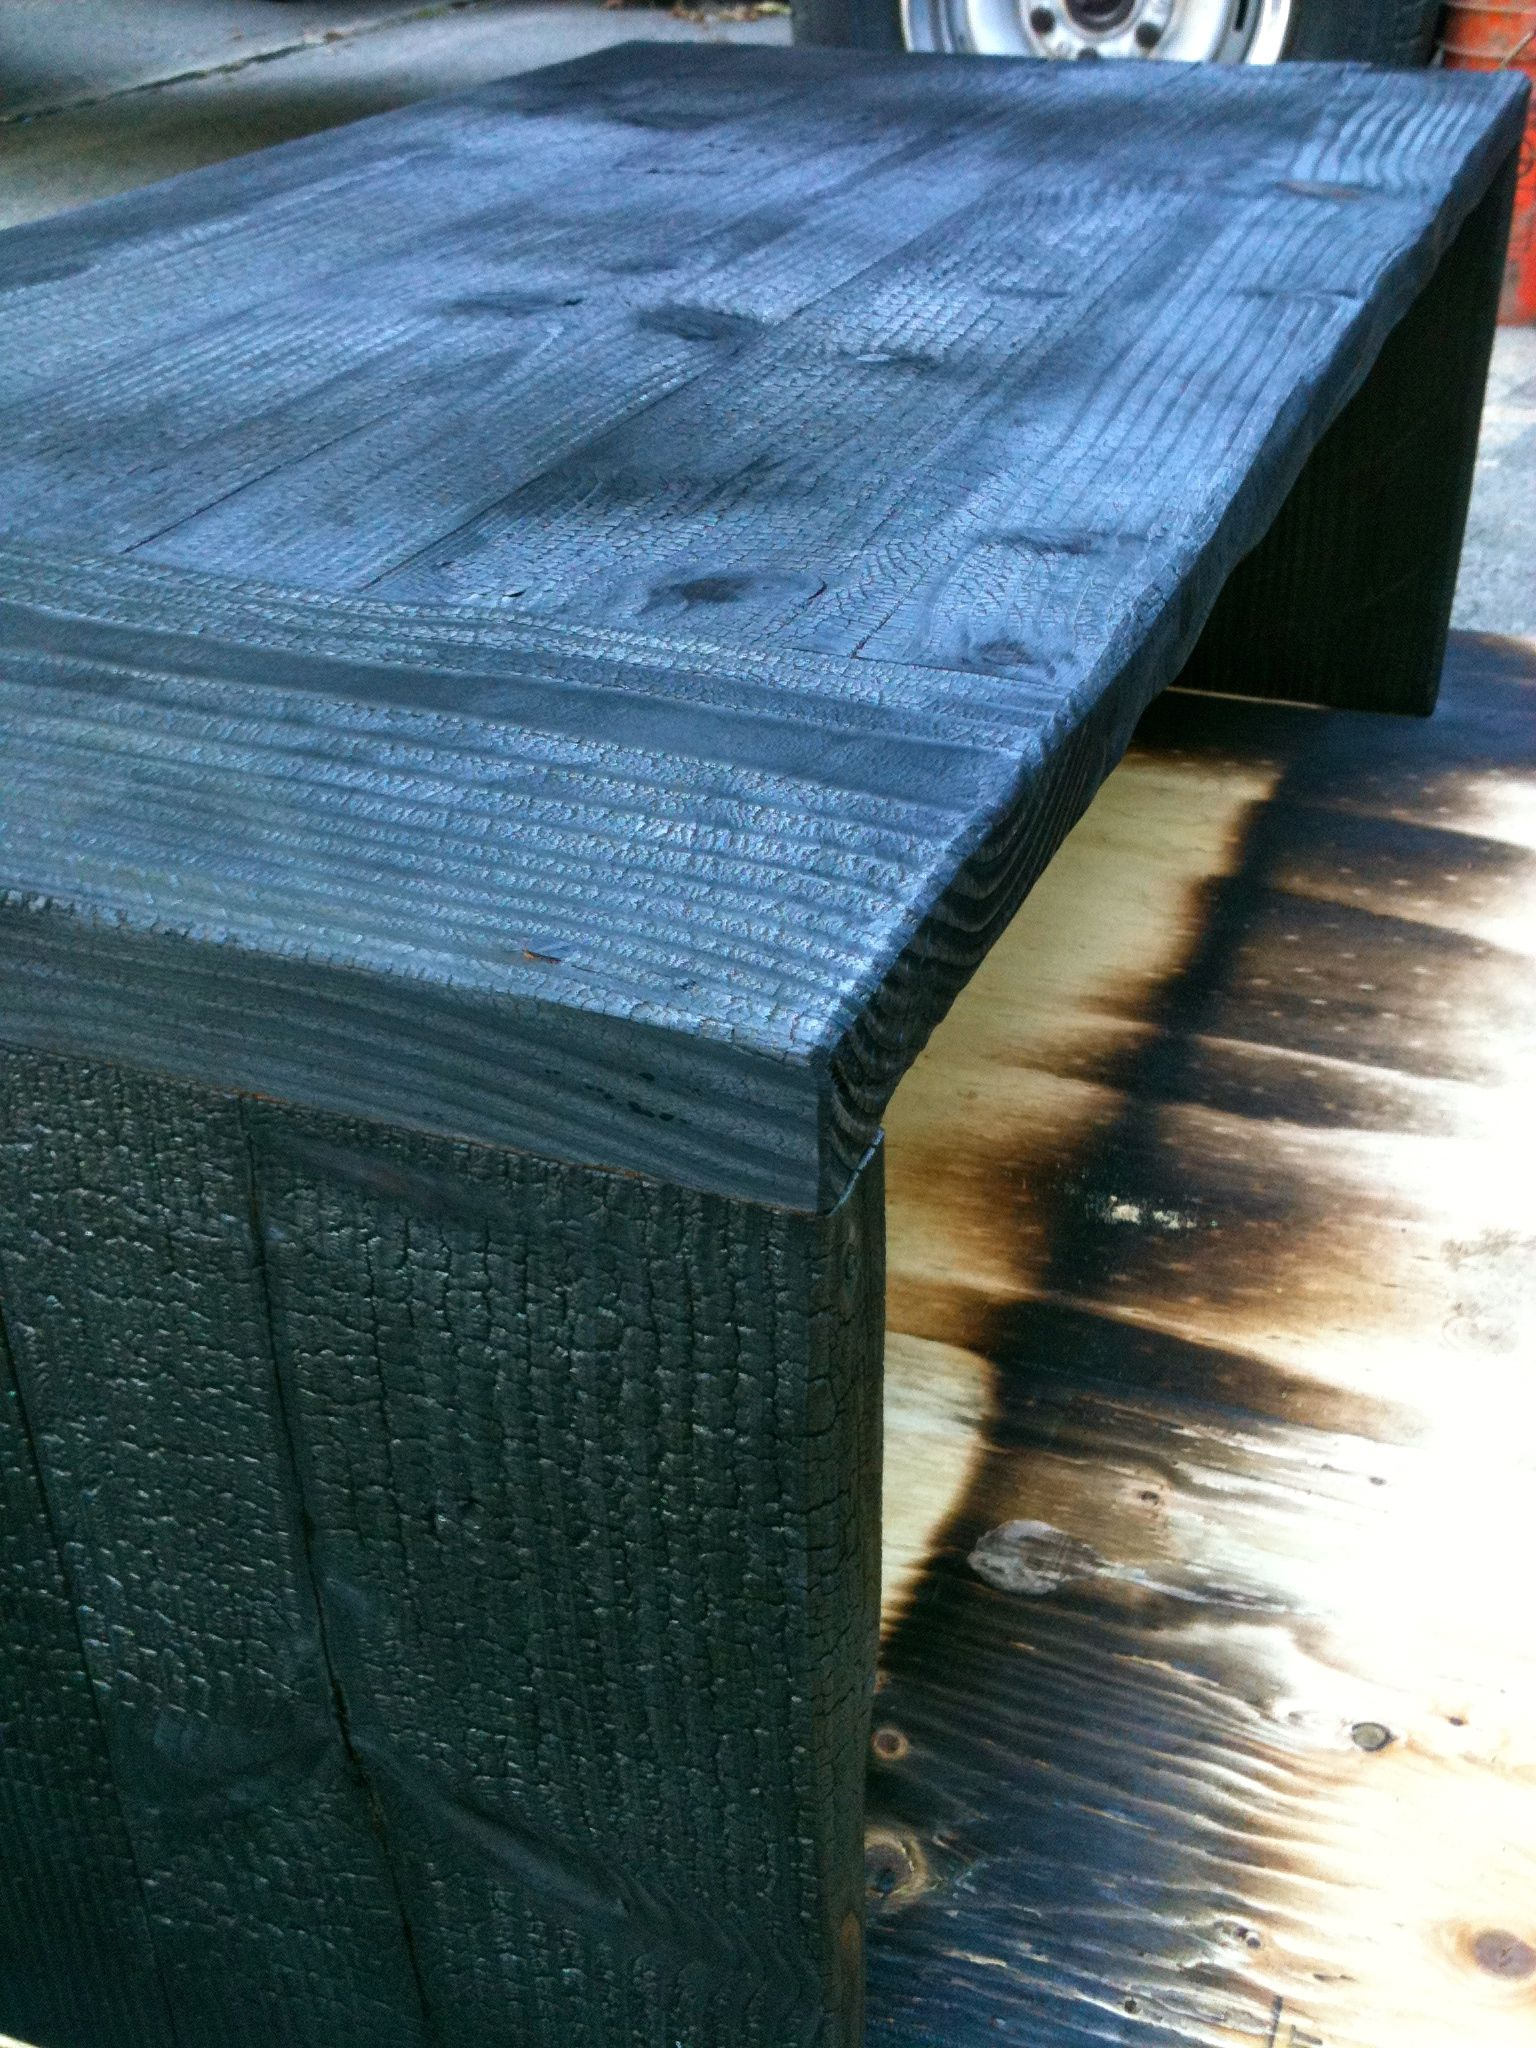 shou sugi ban coffee table my art pieces in 2019 pinterest wood table and wood furniture. Black Bedroom Furniture Sets. Home Design Ideas